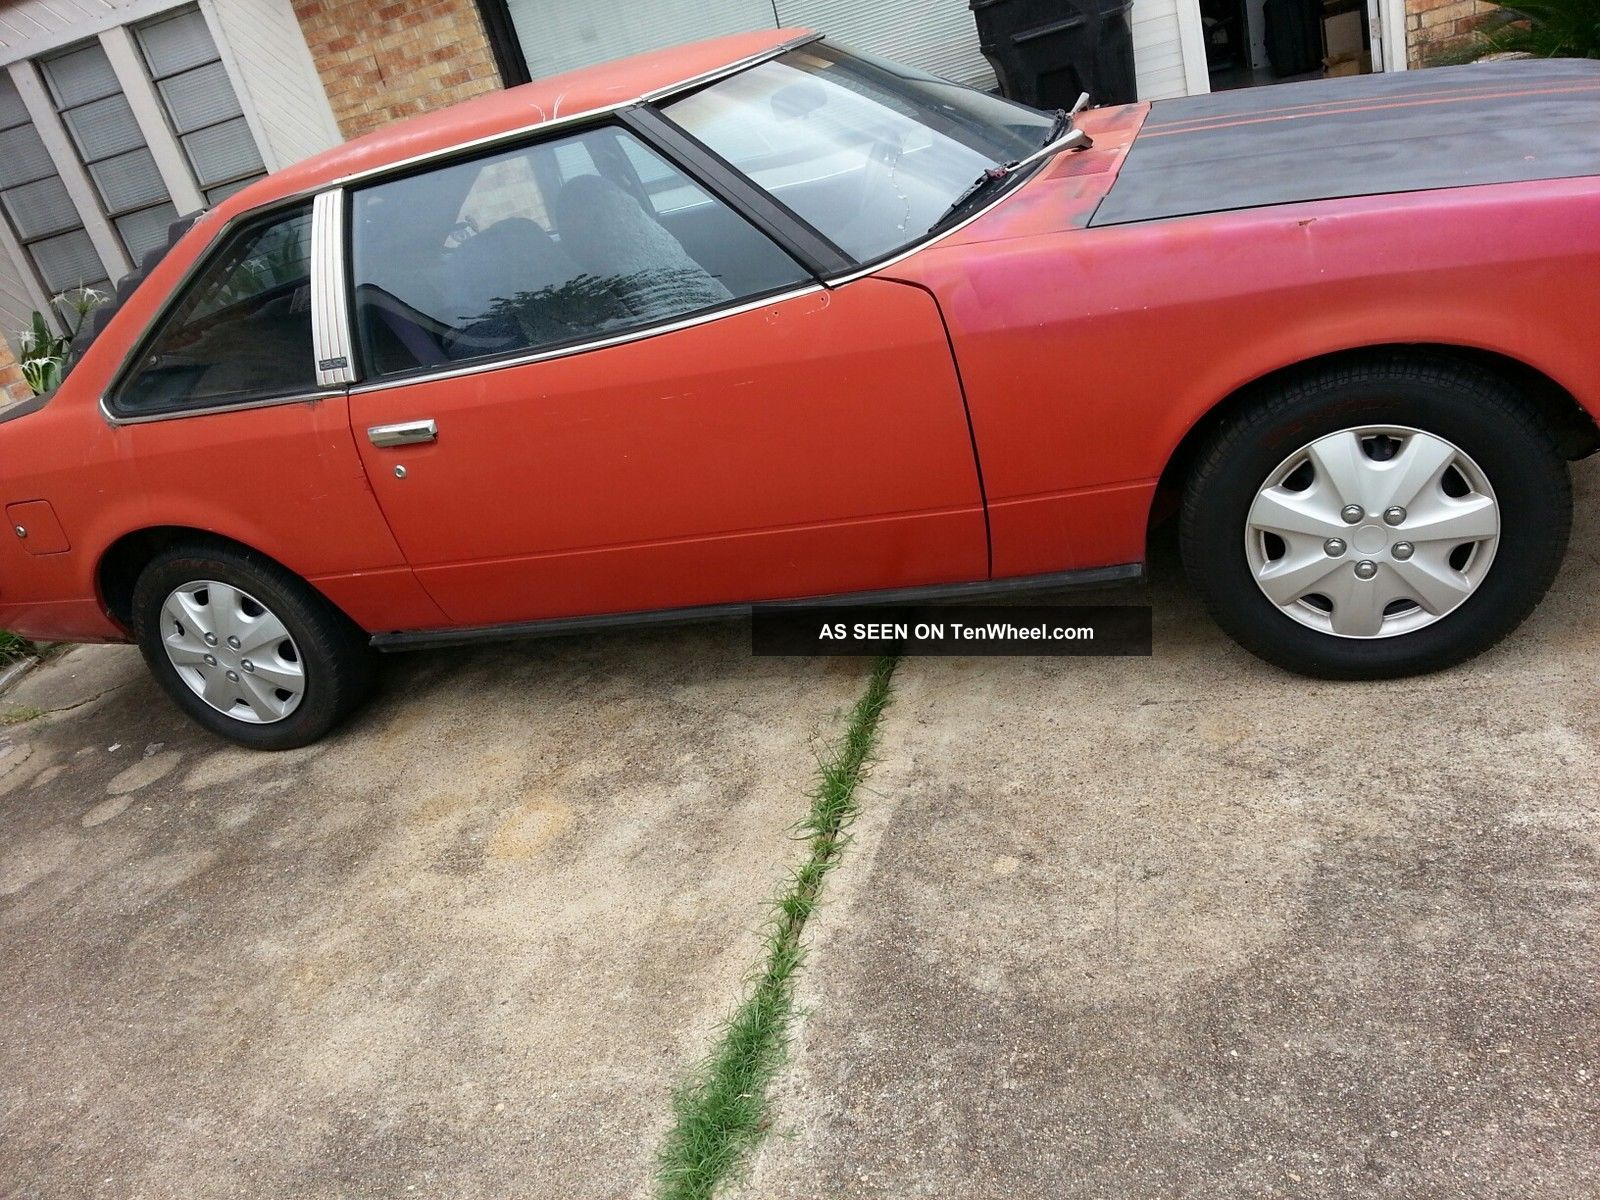 1981 Toyota Celica Gt - 5 Speed Manual Transmissionn Celica photo